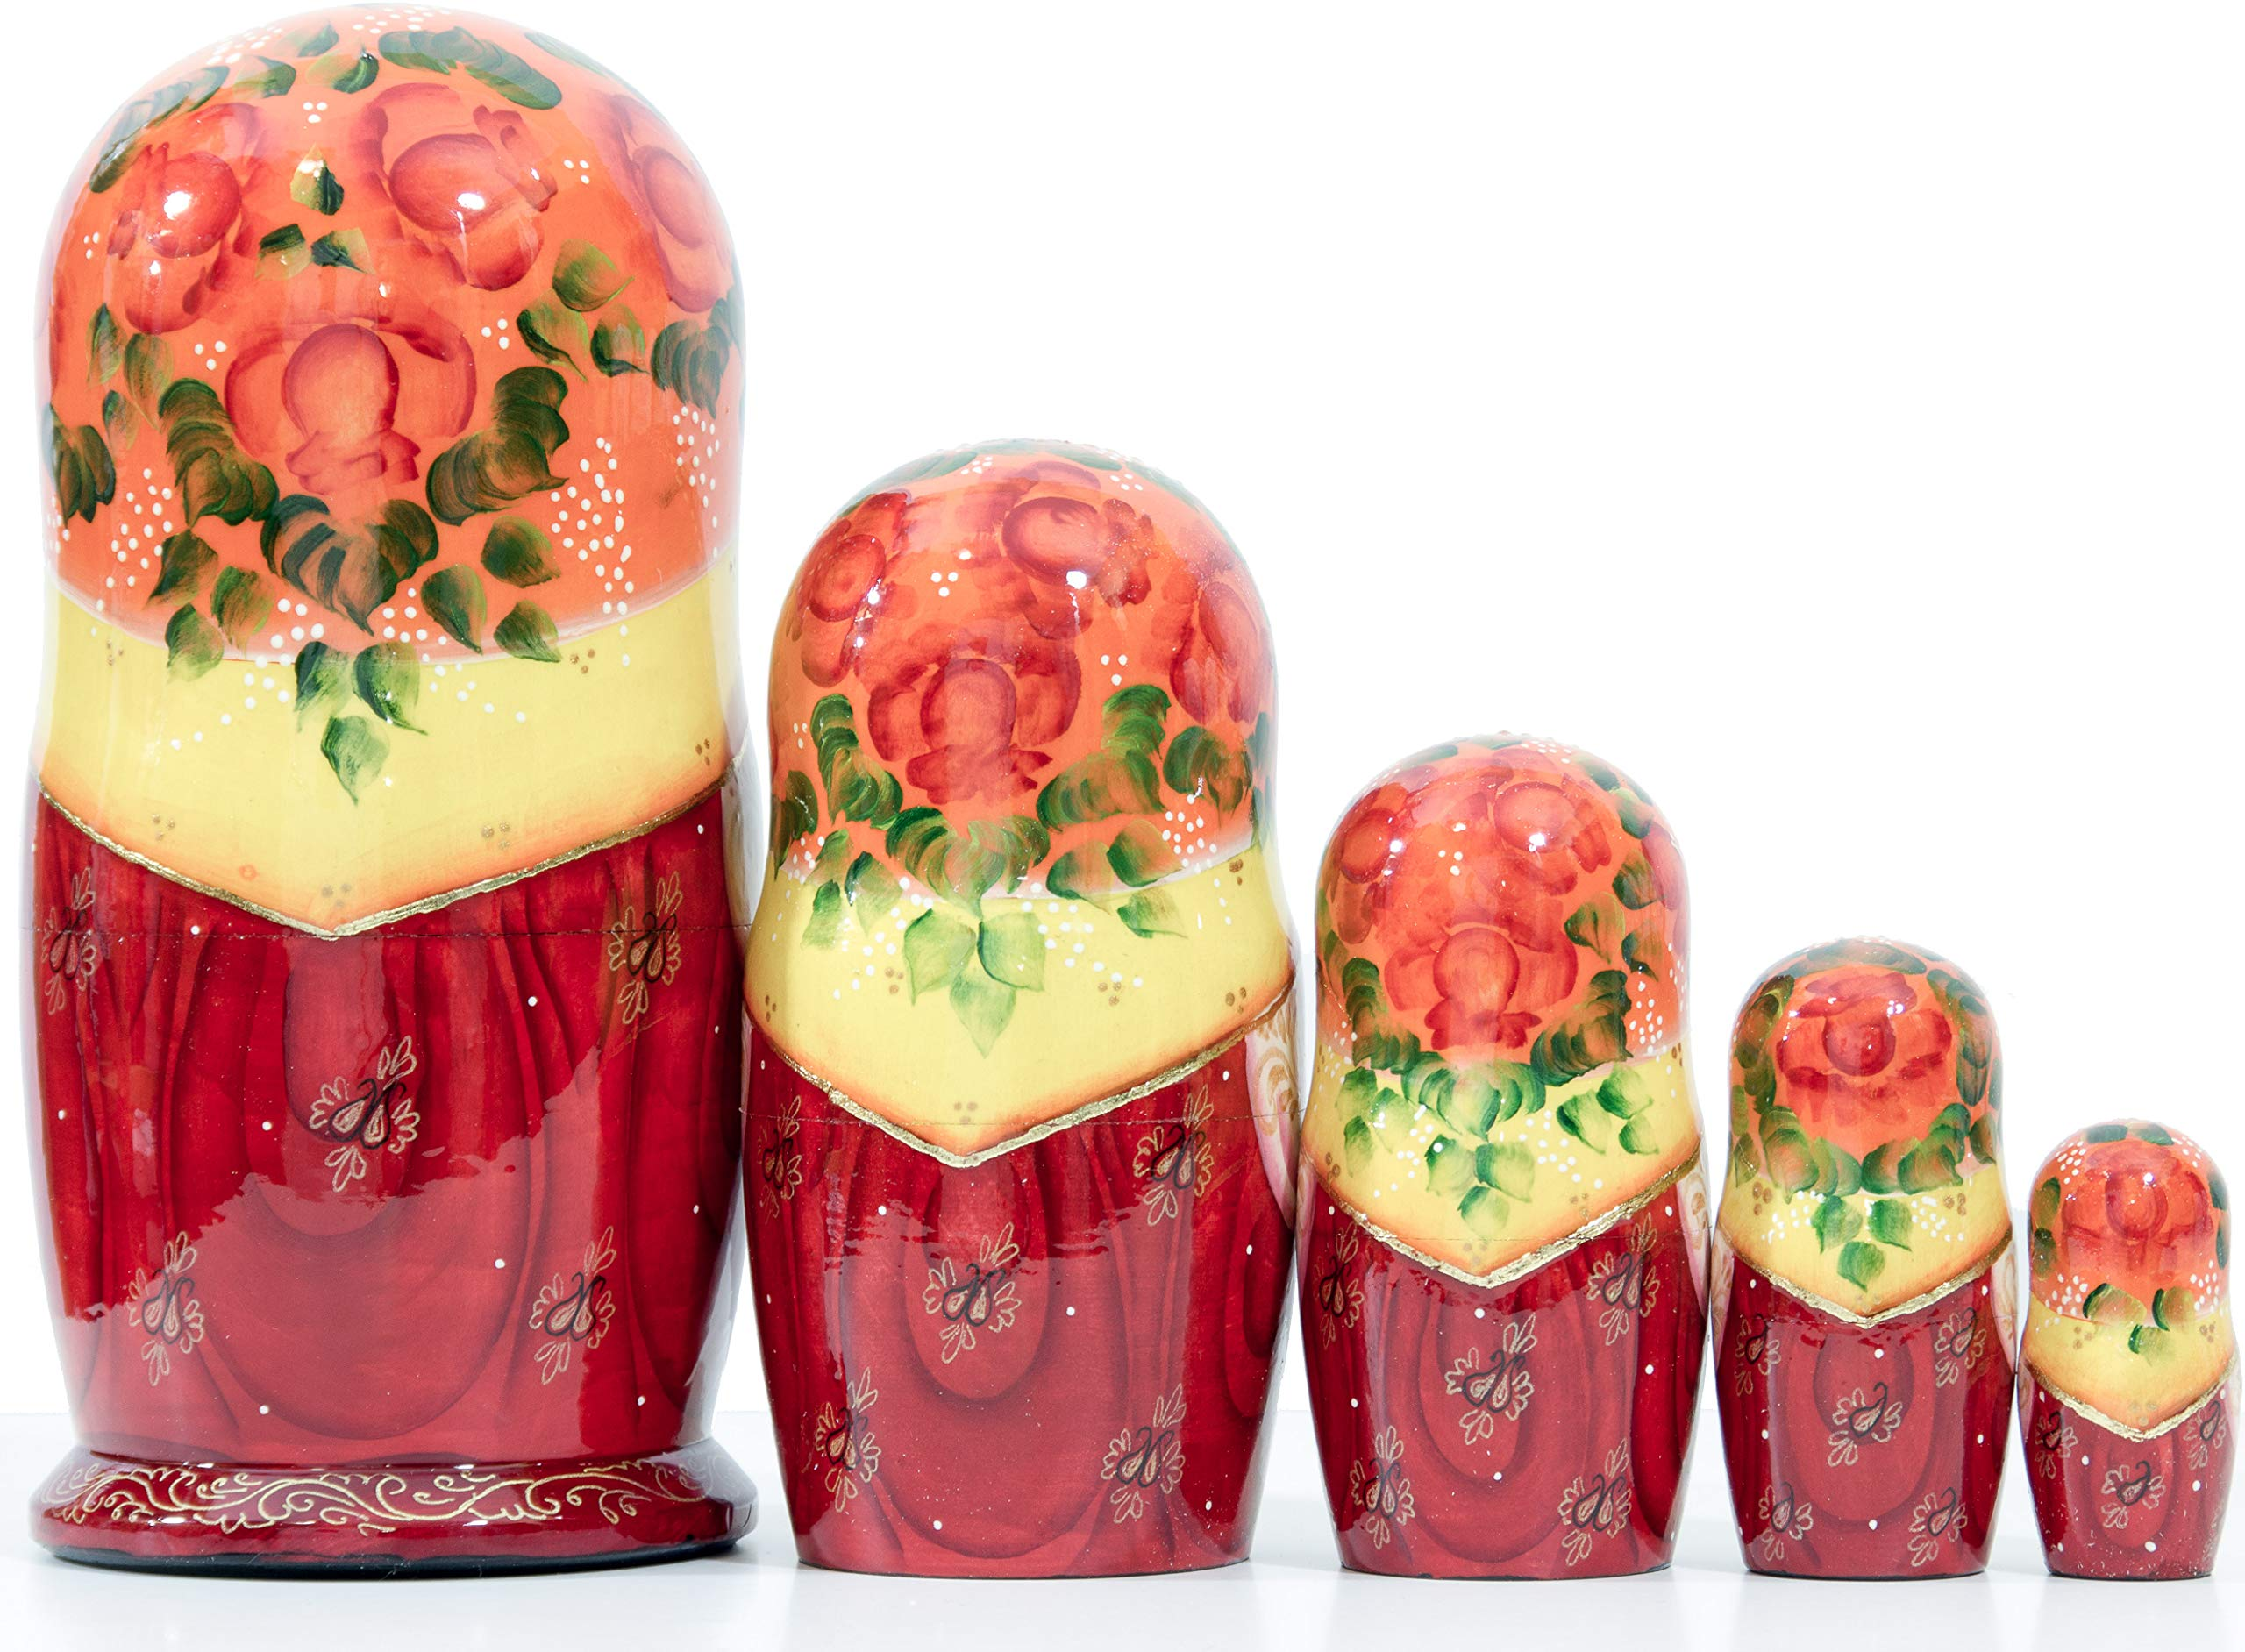 Russian Nesting Doll - Village Scenes - Hand Painted in Russia - 5 Color/Size Variations - Traditional Matryoshka Babushka (6.75``(5 Dolls in 1), Scene L) by craftsfromrussia (Image #3)